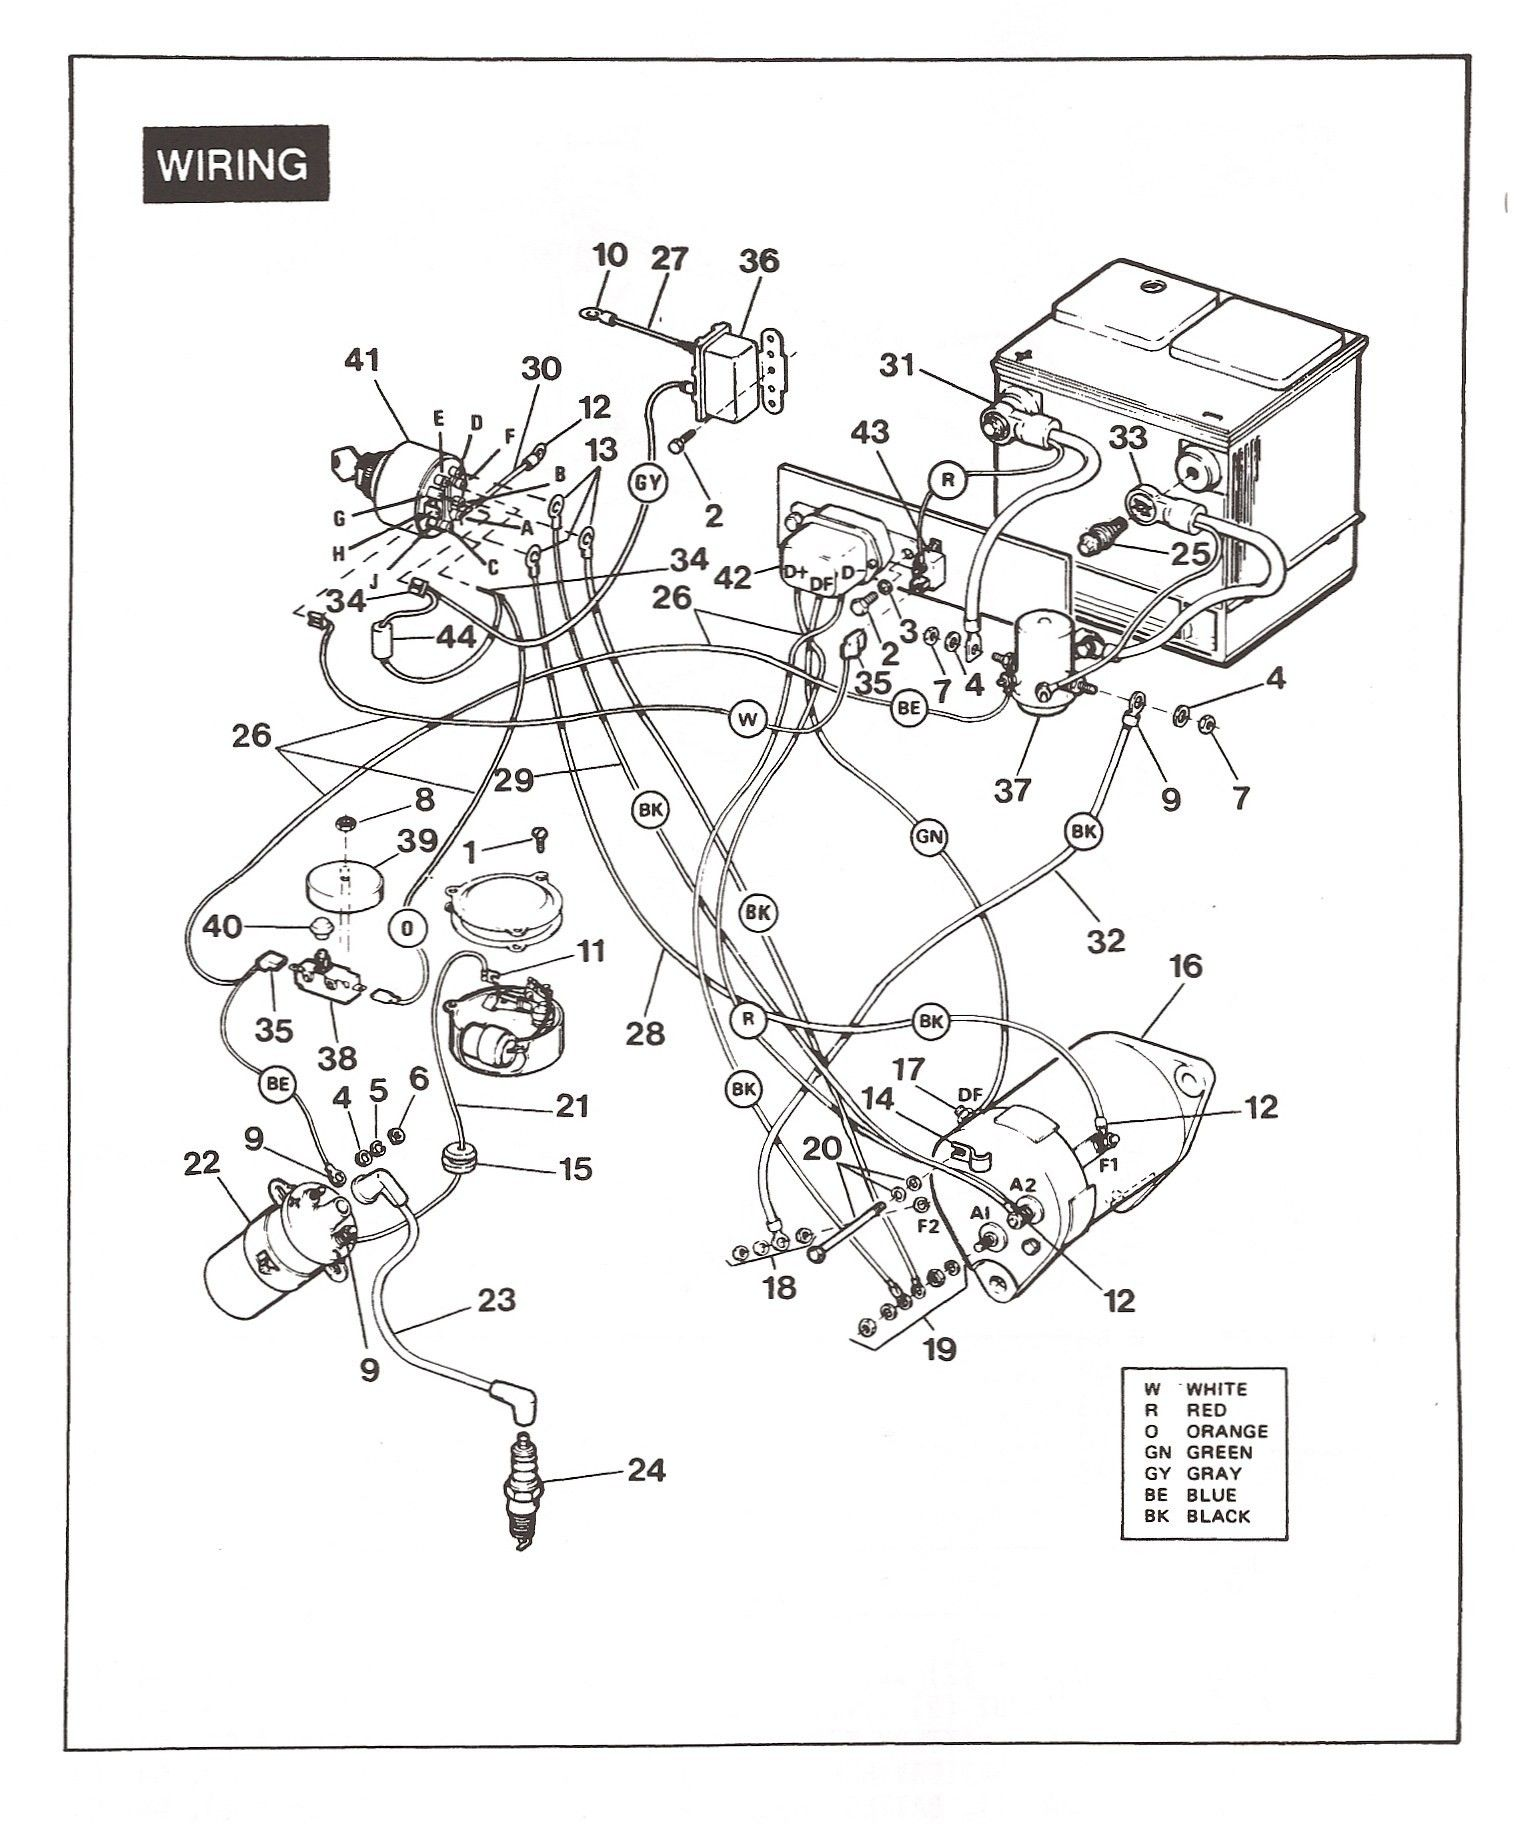 Unique Wiring Diagram 2007 Club Car Precedent #